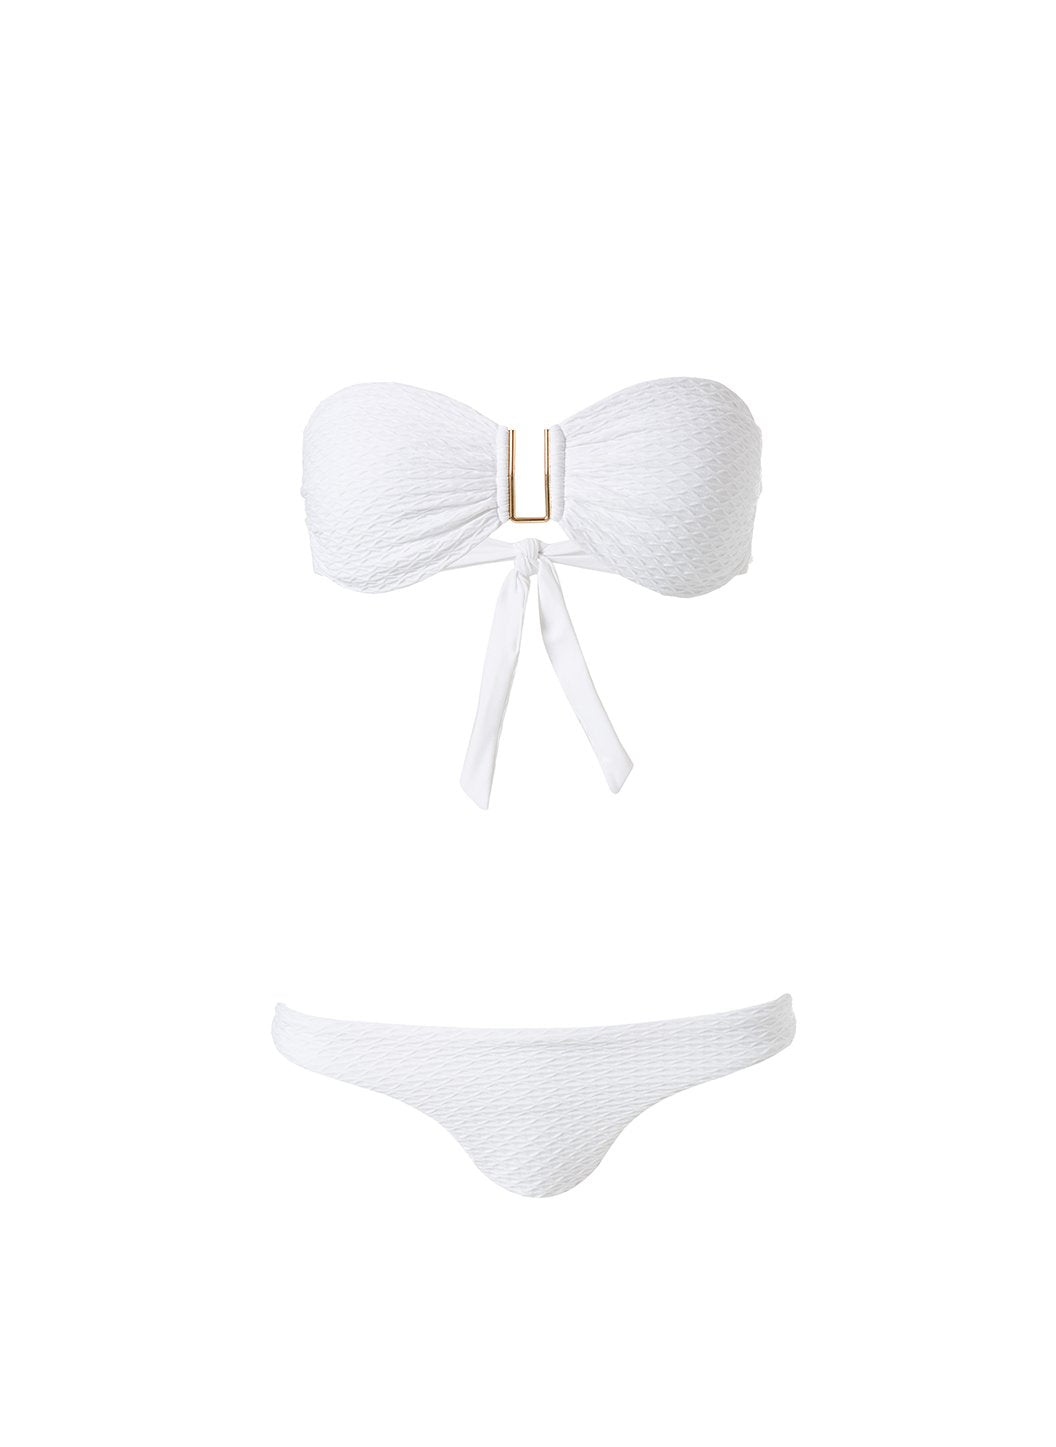 Barcelona_White_Waves_Bikini_Cutouts